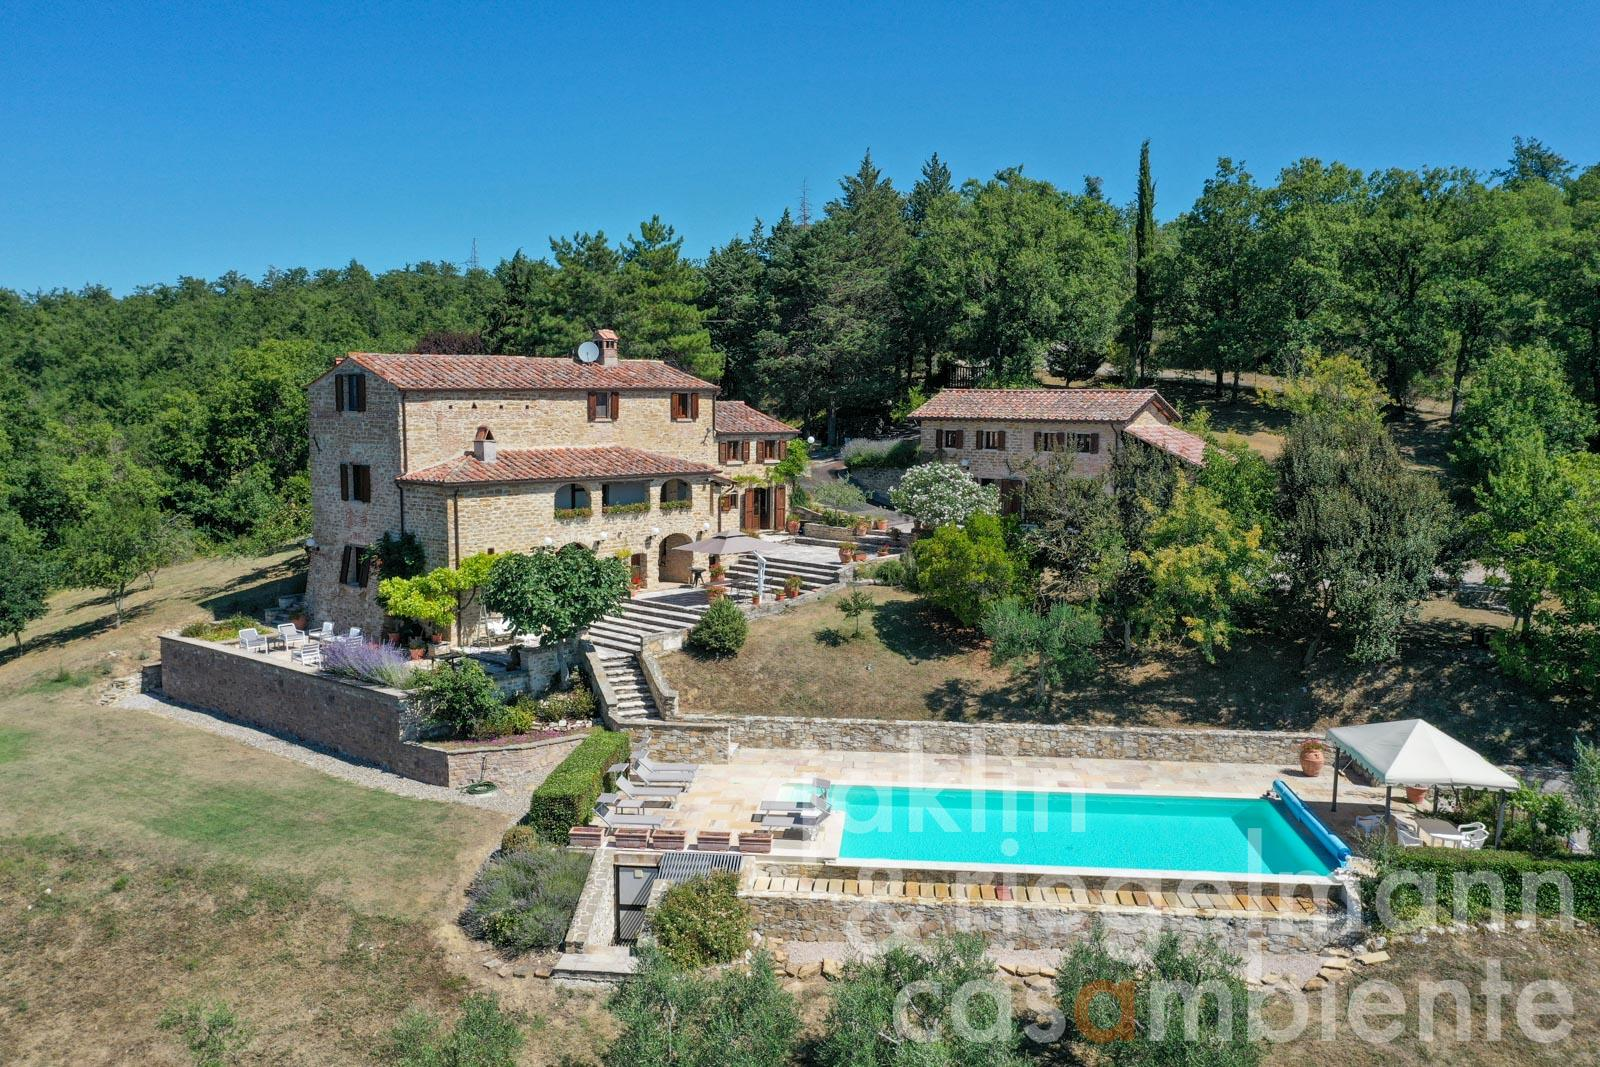 Country estate with two residences and pool near Lake Montedoglio